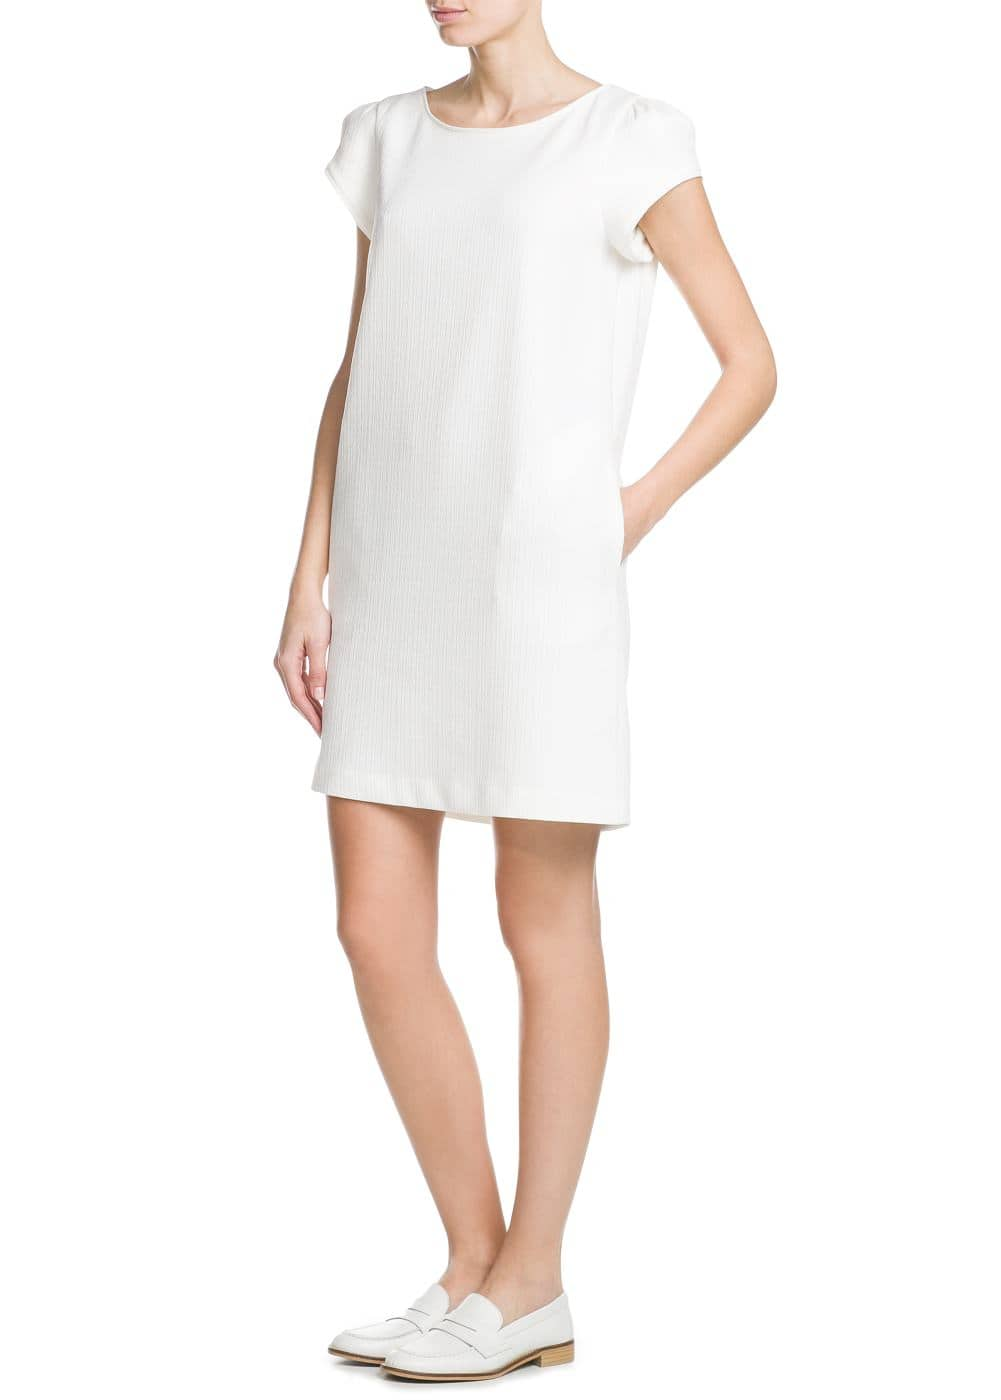 Textured cotton dress